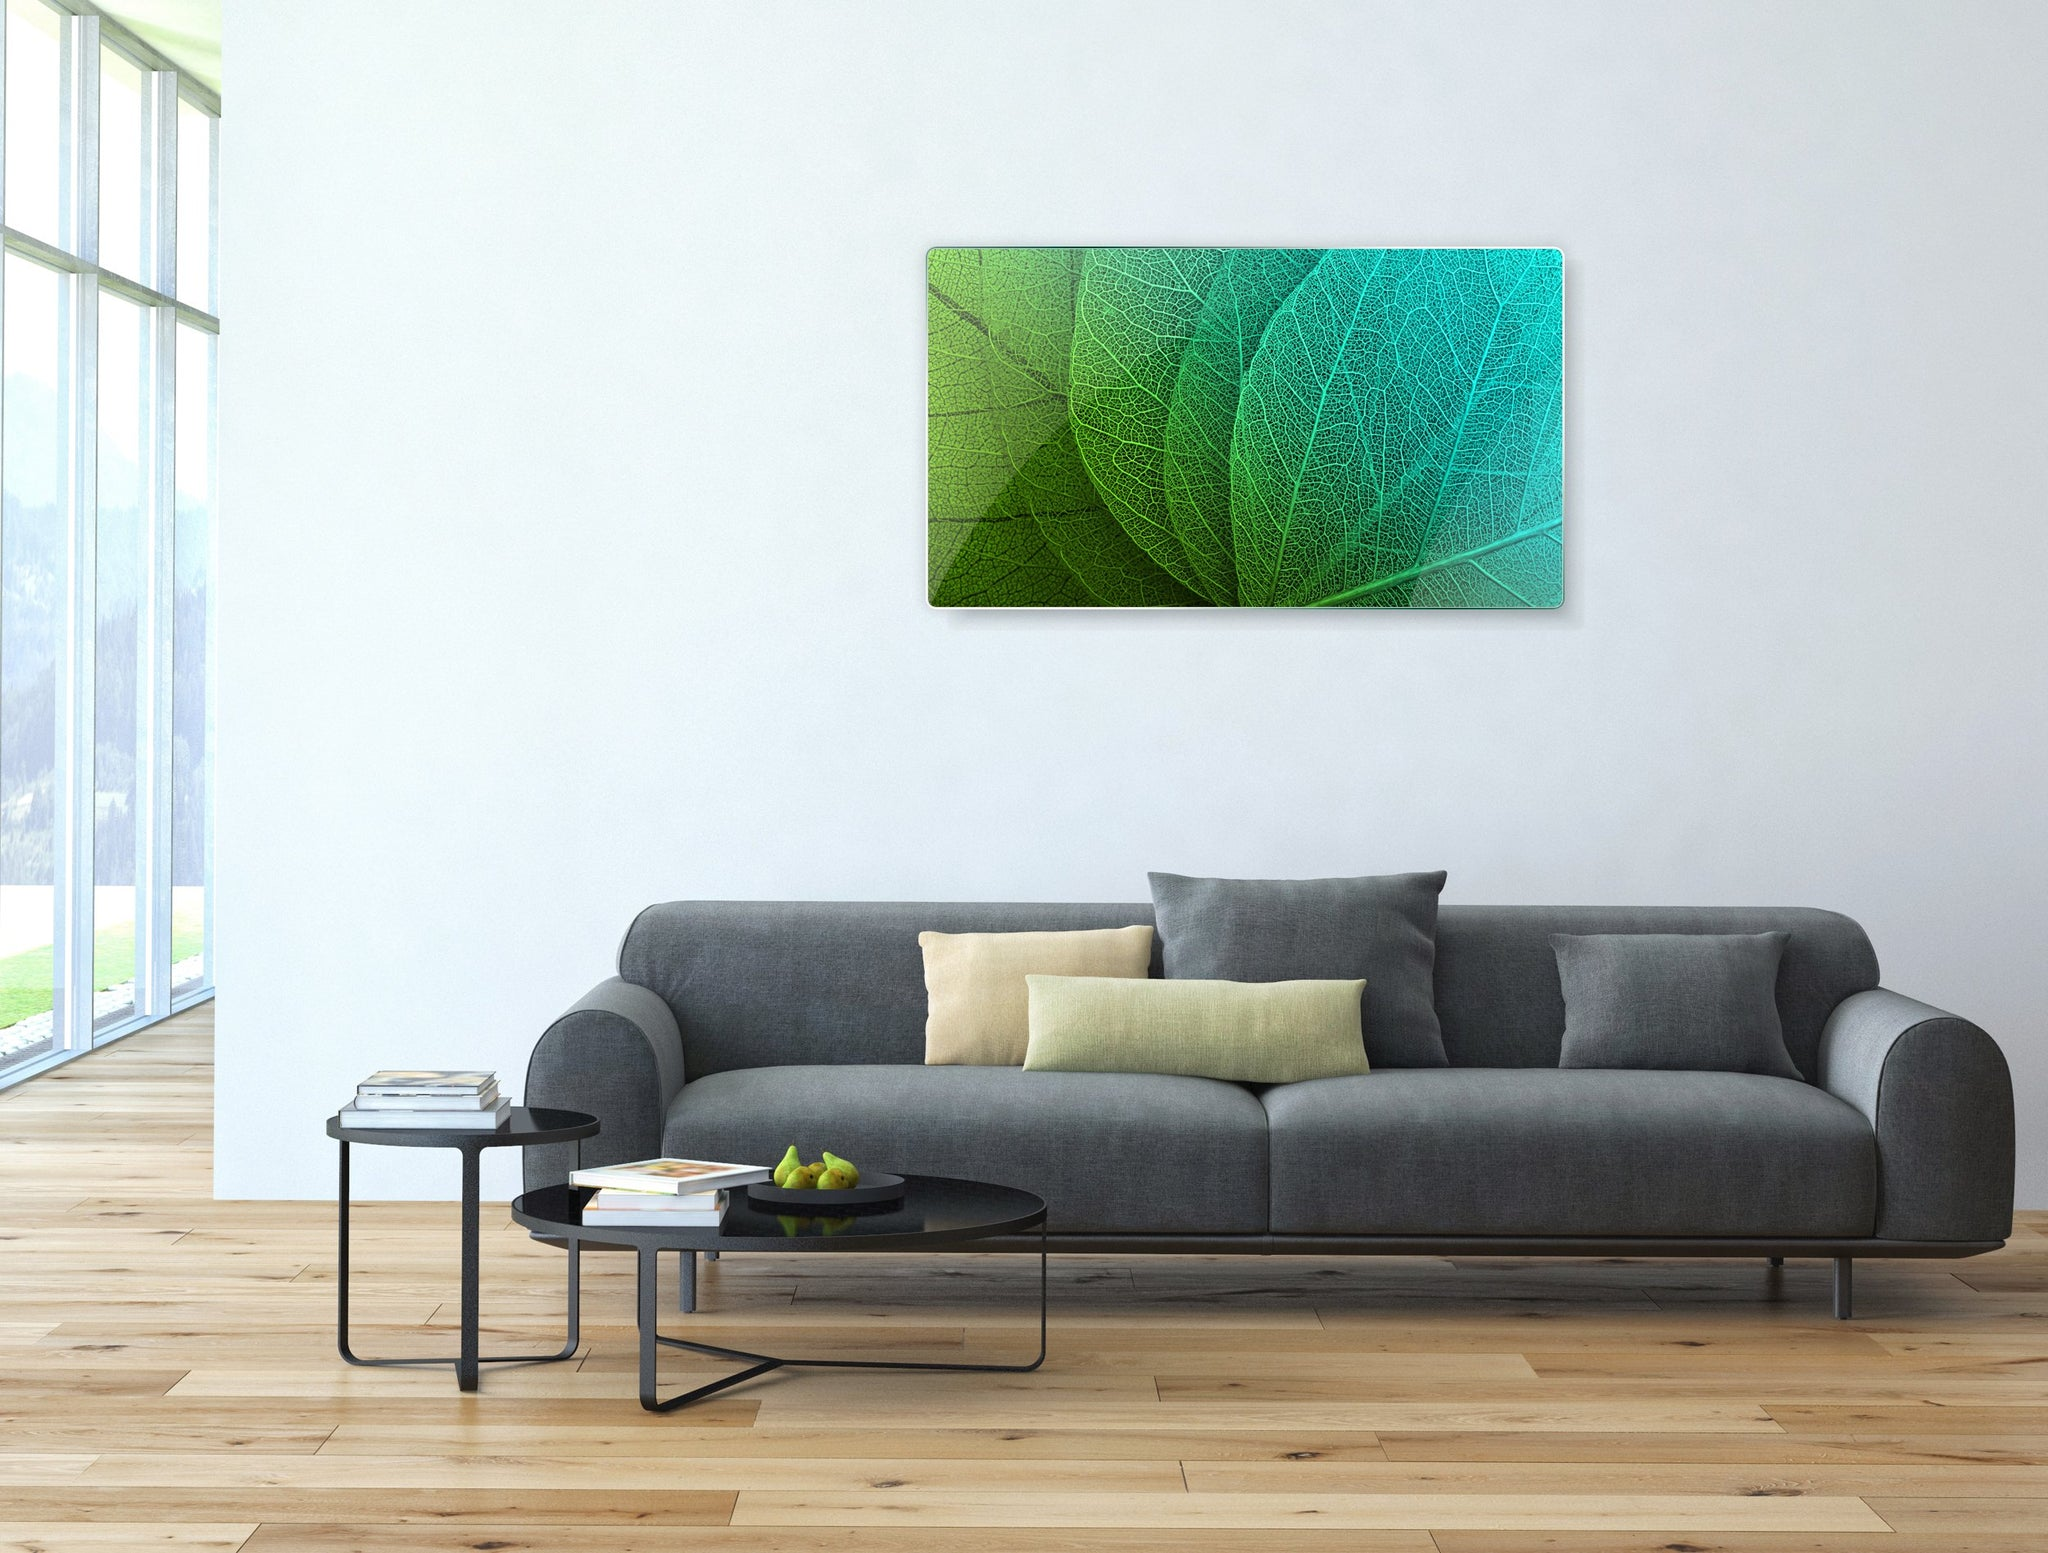 Art wall pictures Green Leaf - AP001 - Art Life Decor